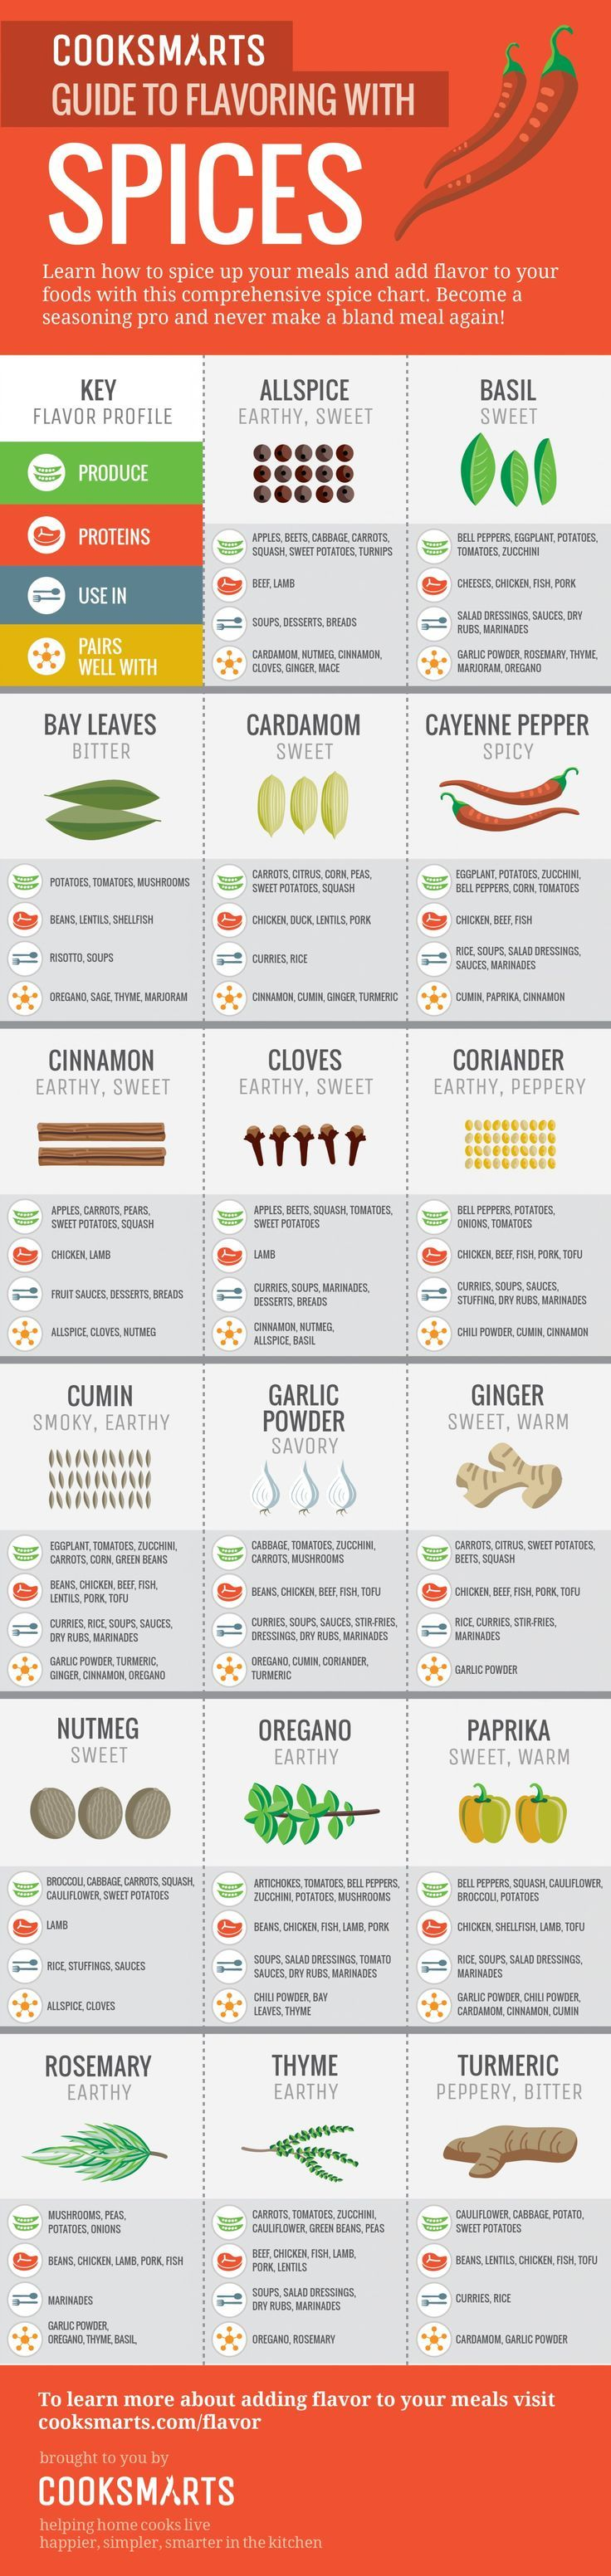 Spice Up Your Meals With These 17 Special Herbs & Spices! http://homeandgardenamerica.com/herbs-and-spices-guide-for-cooking